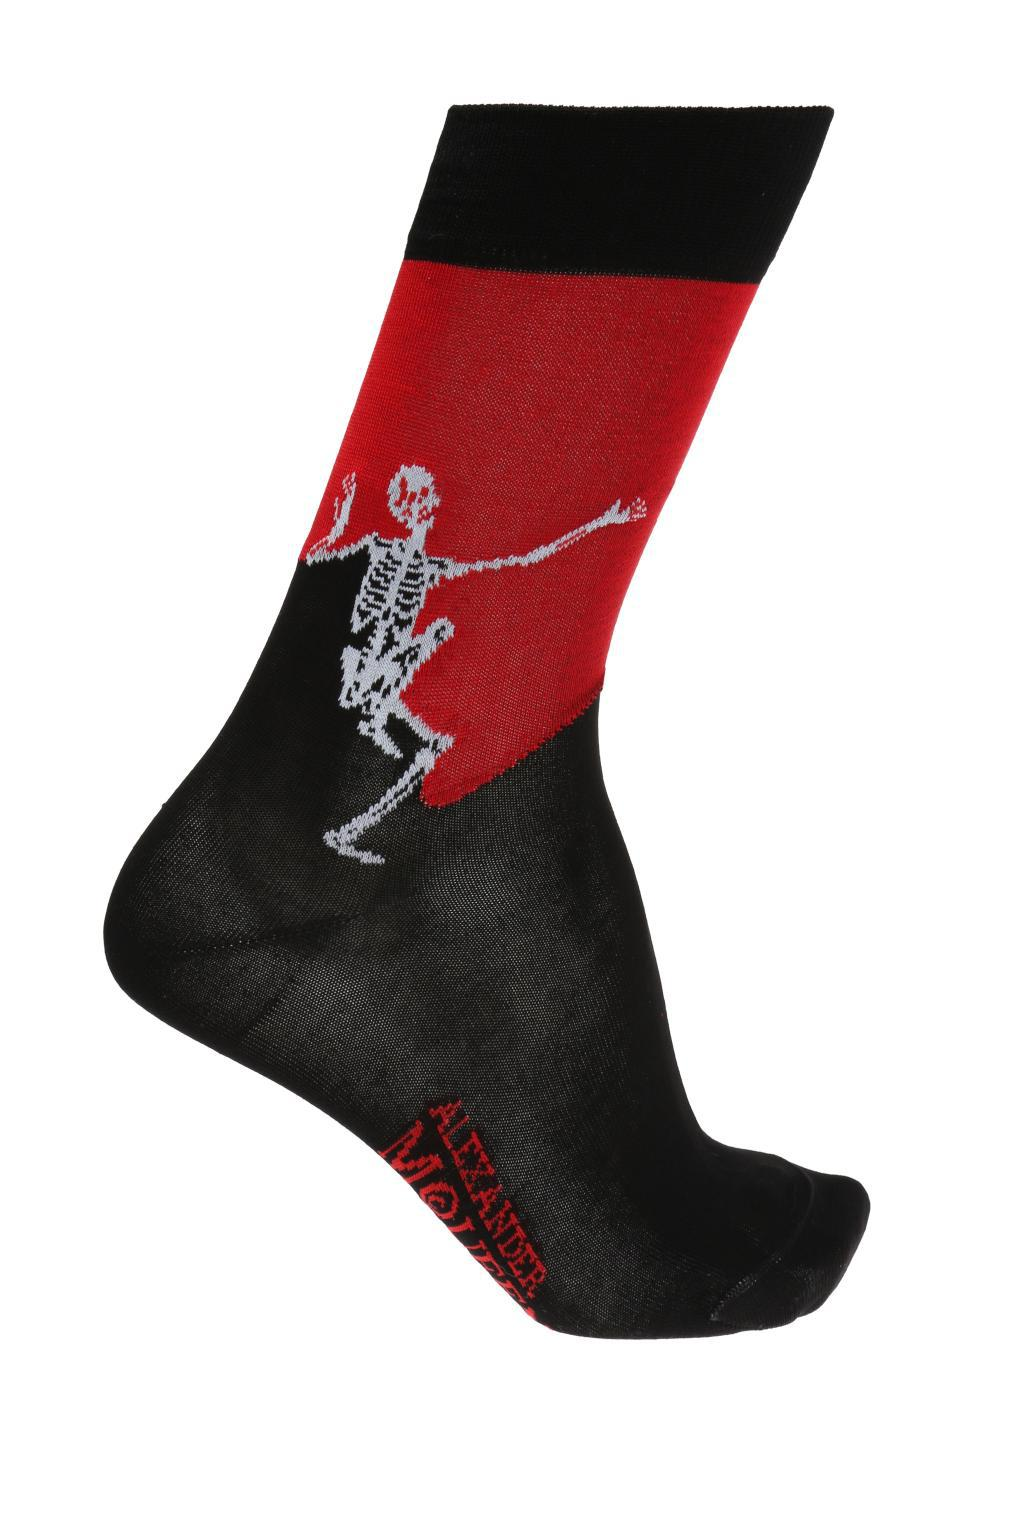 Free Shipping In China How Much Cheap Price logo embroidered socks - Black Alexander McQueen Cheap 100% Guaranteed Nicekicks For Sale dmxG8QAR